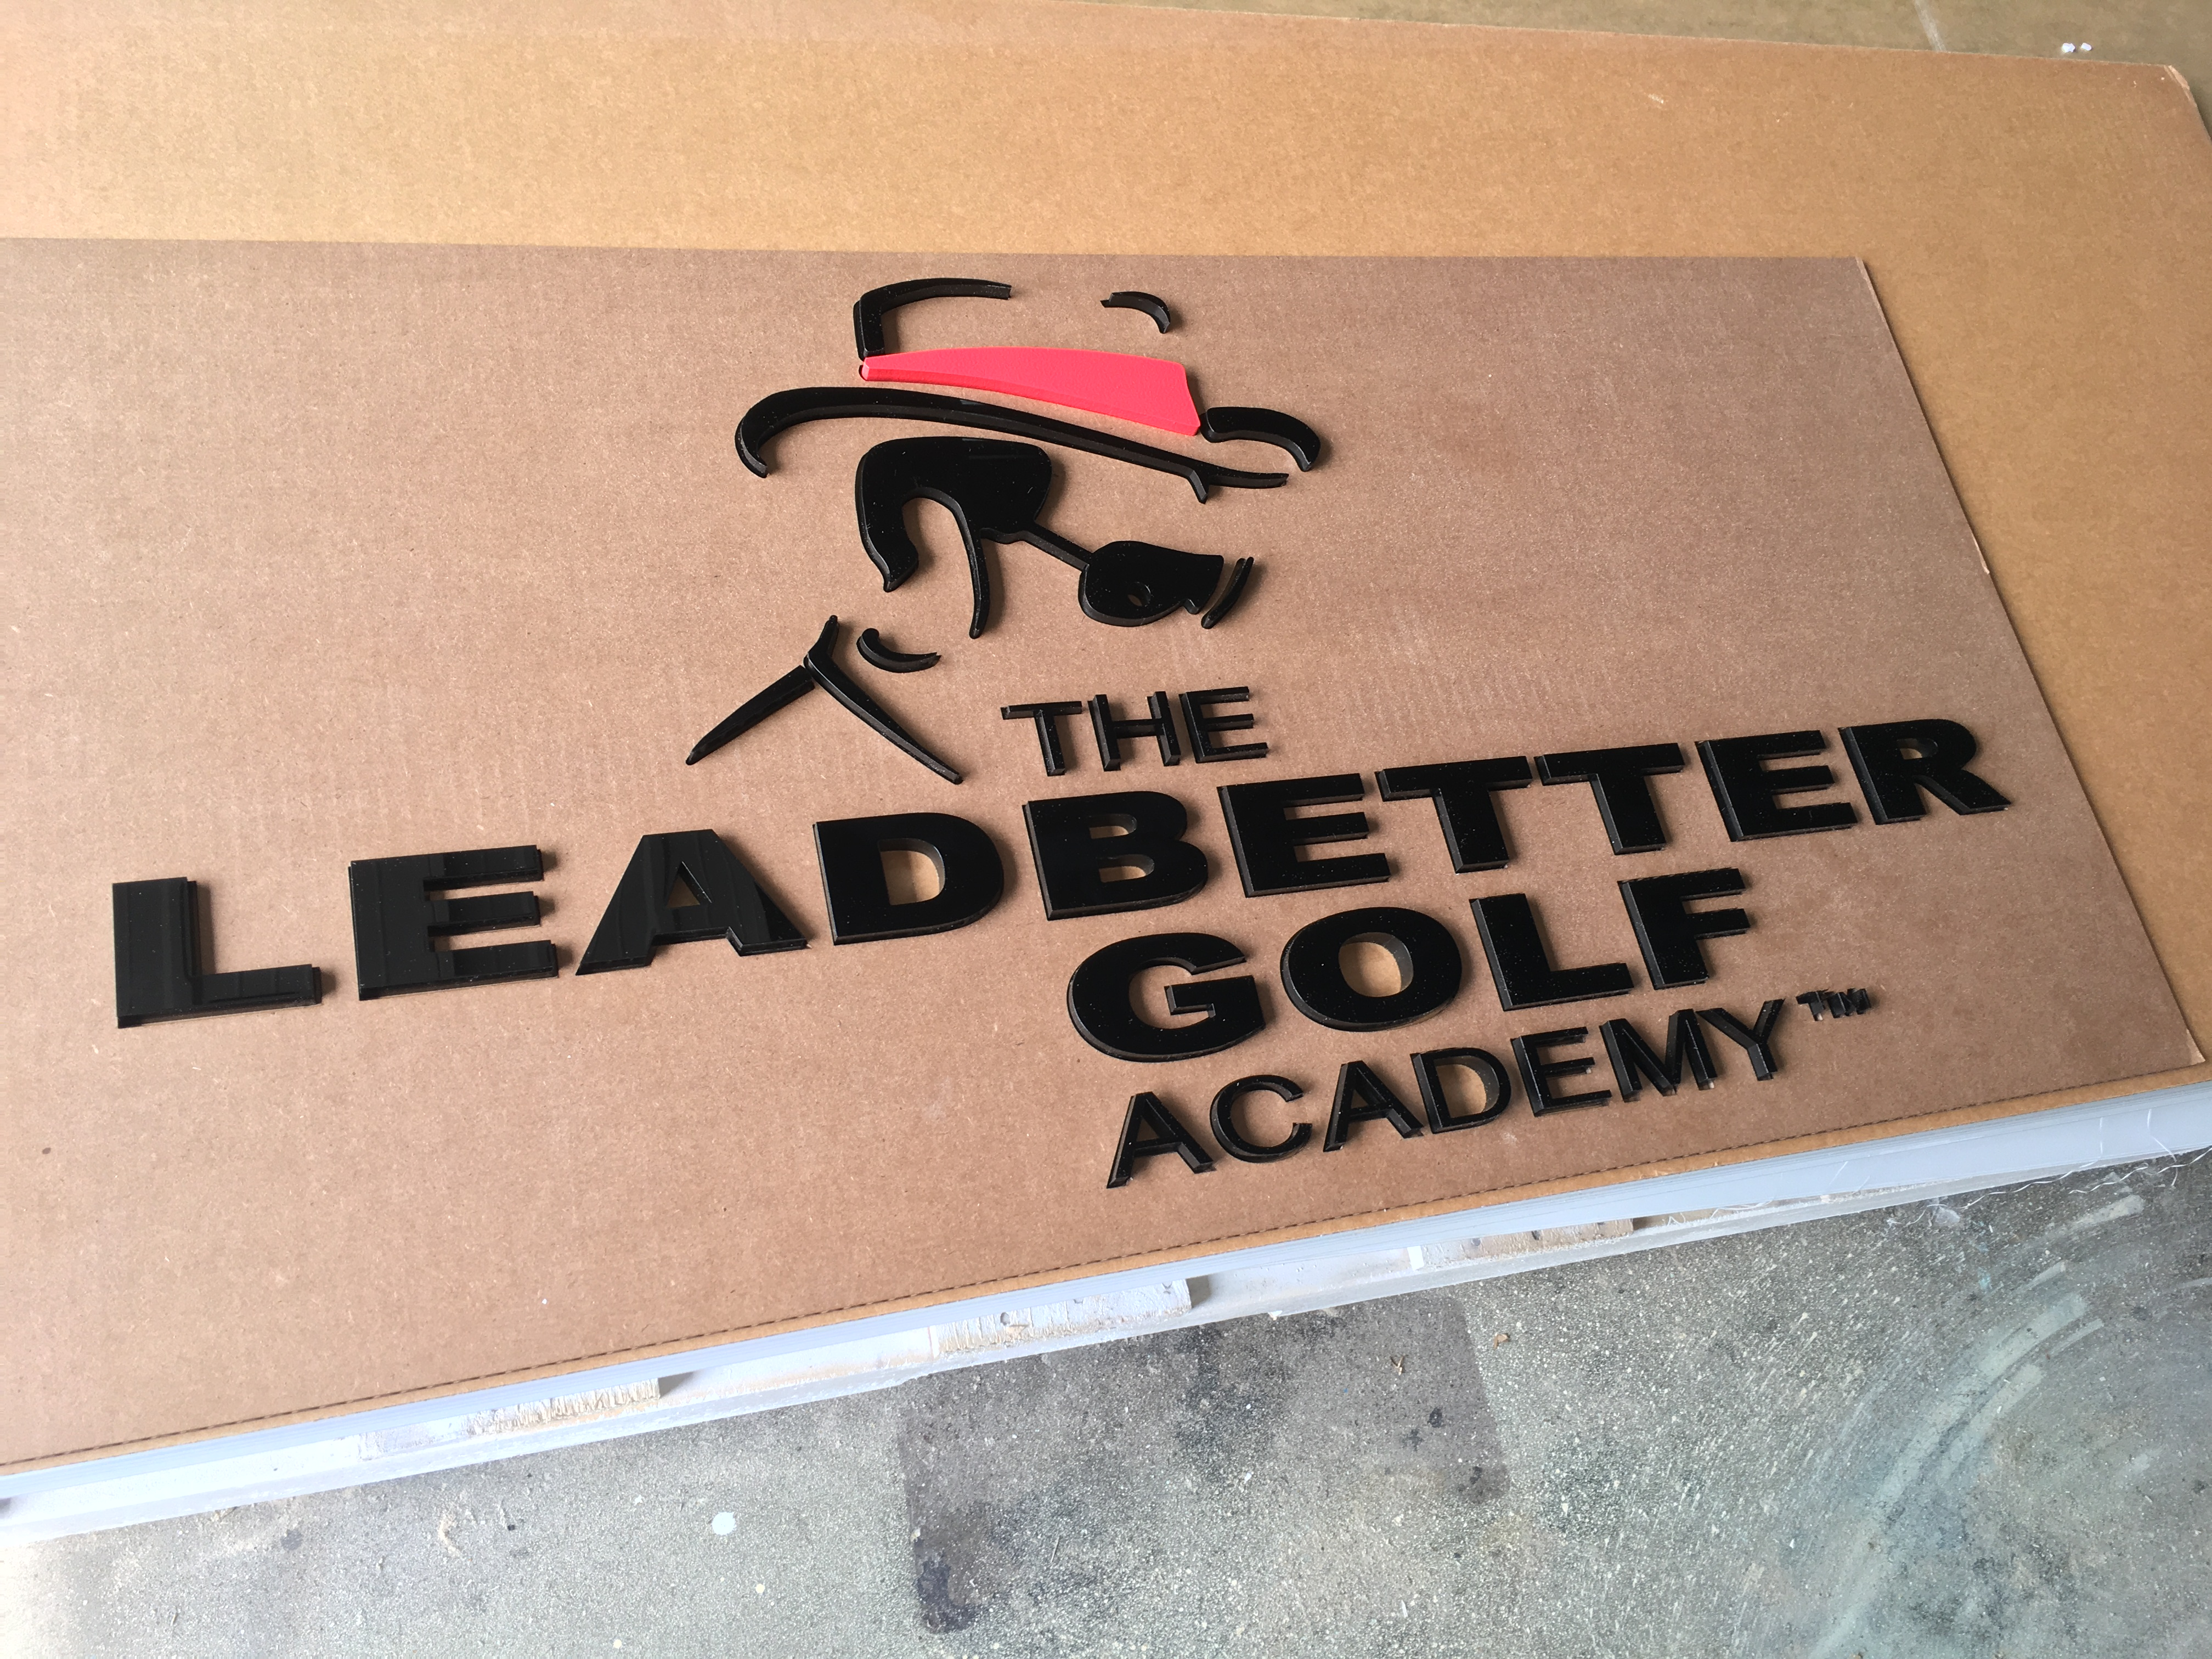 The Leadbetter Golf Academy